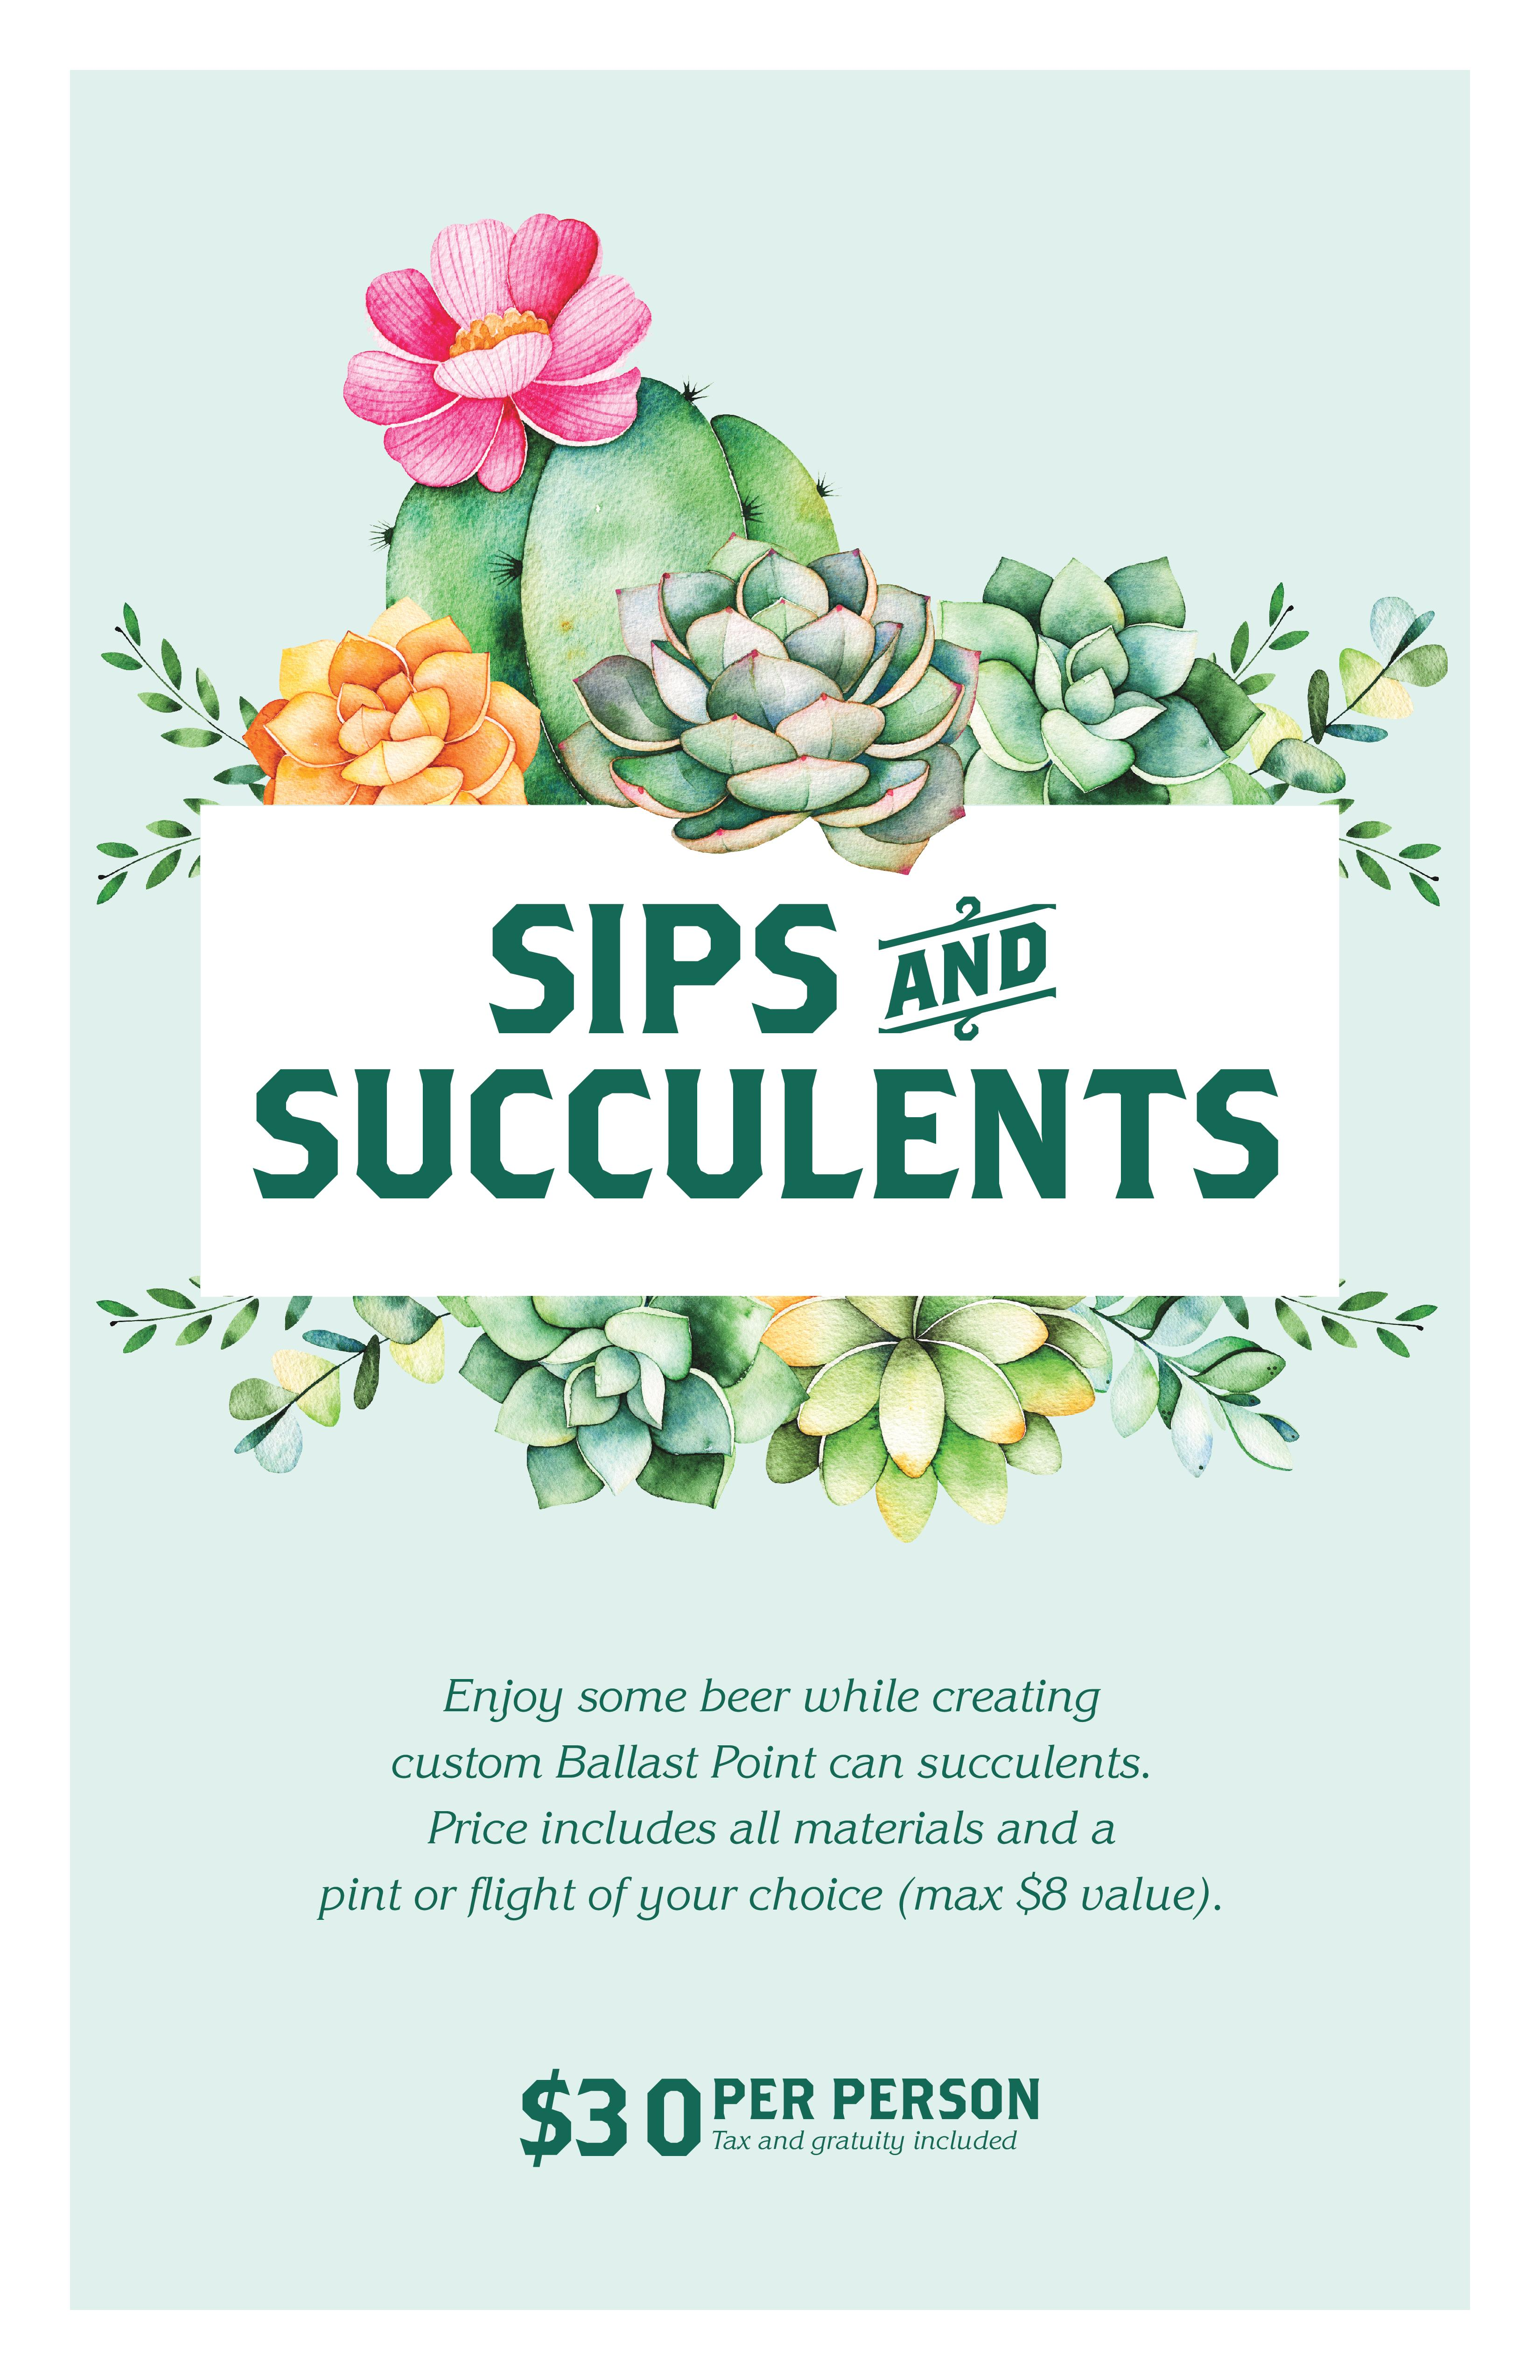 Sips & Succulents - BP Chicago LARGE